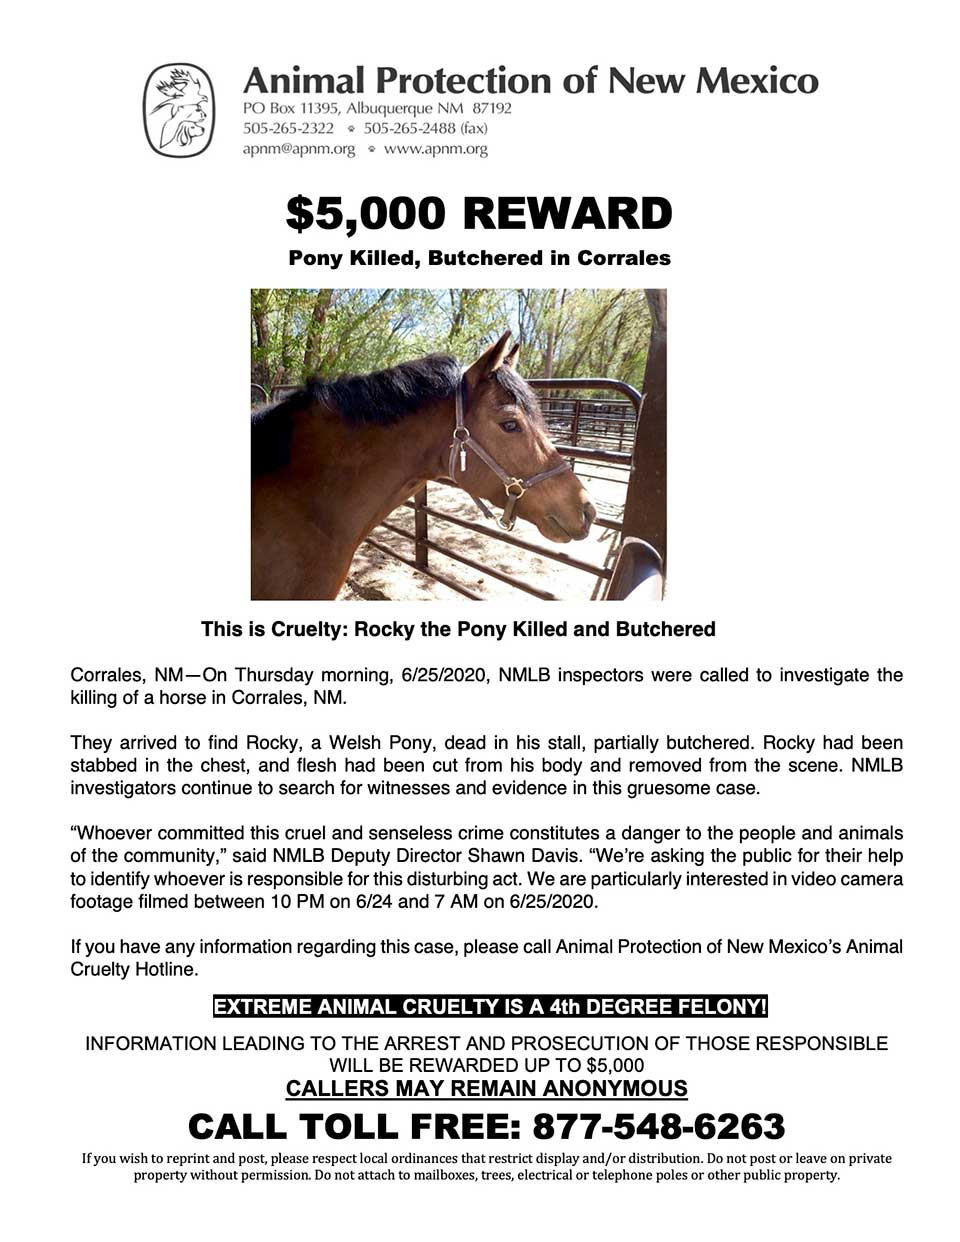 $5,000 REWARD - Pony Killed, Butchered in Corrales